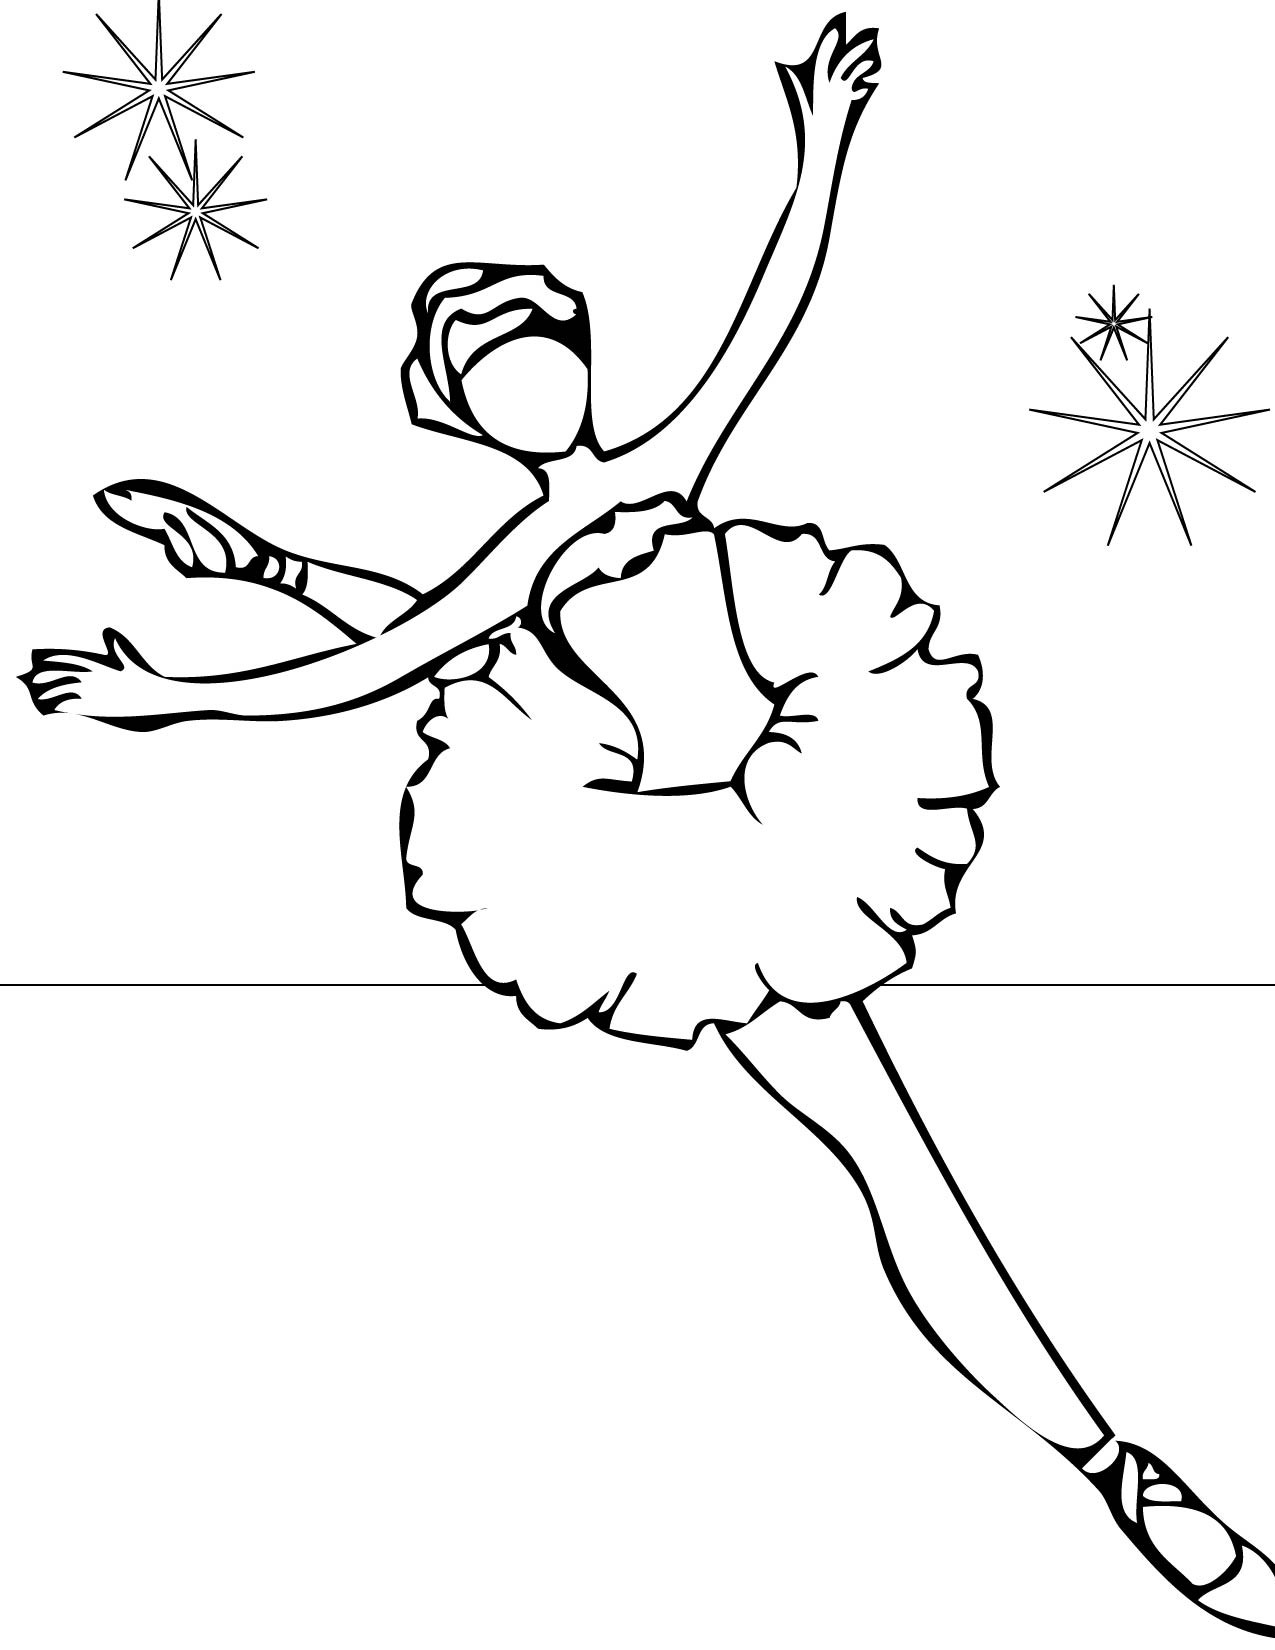 Best ideas about Ballerina Coloring Pages For Girls . Save or Pin Ballerina Coloring Pages for childrens printable for free Now.